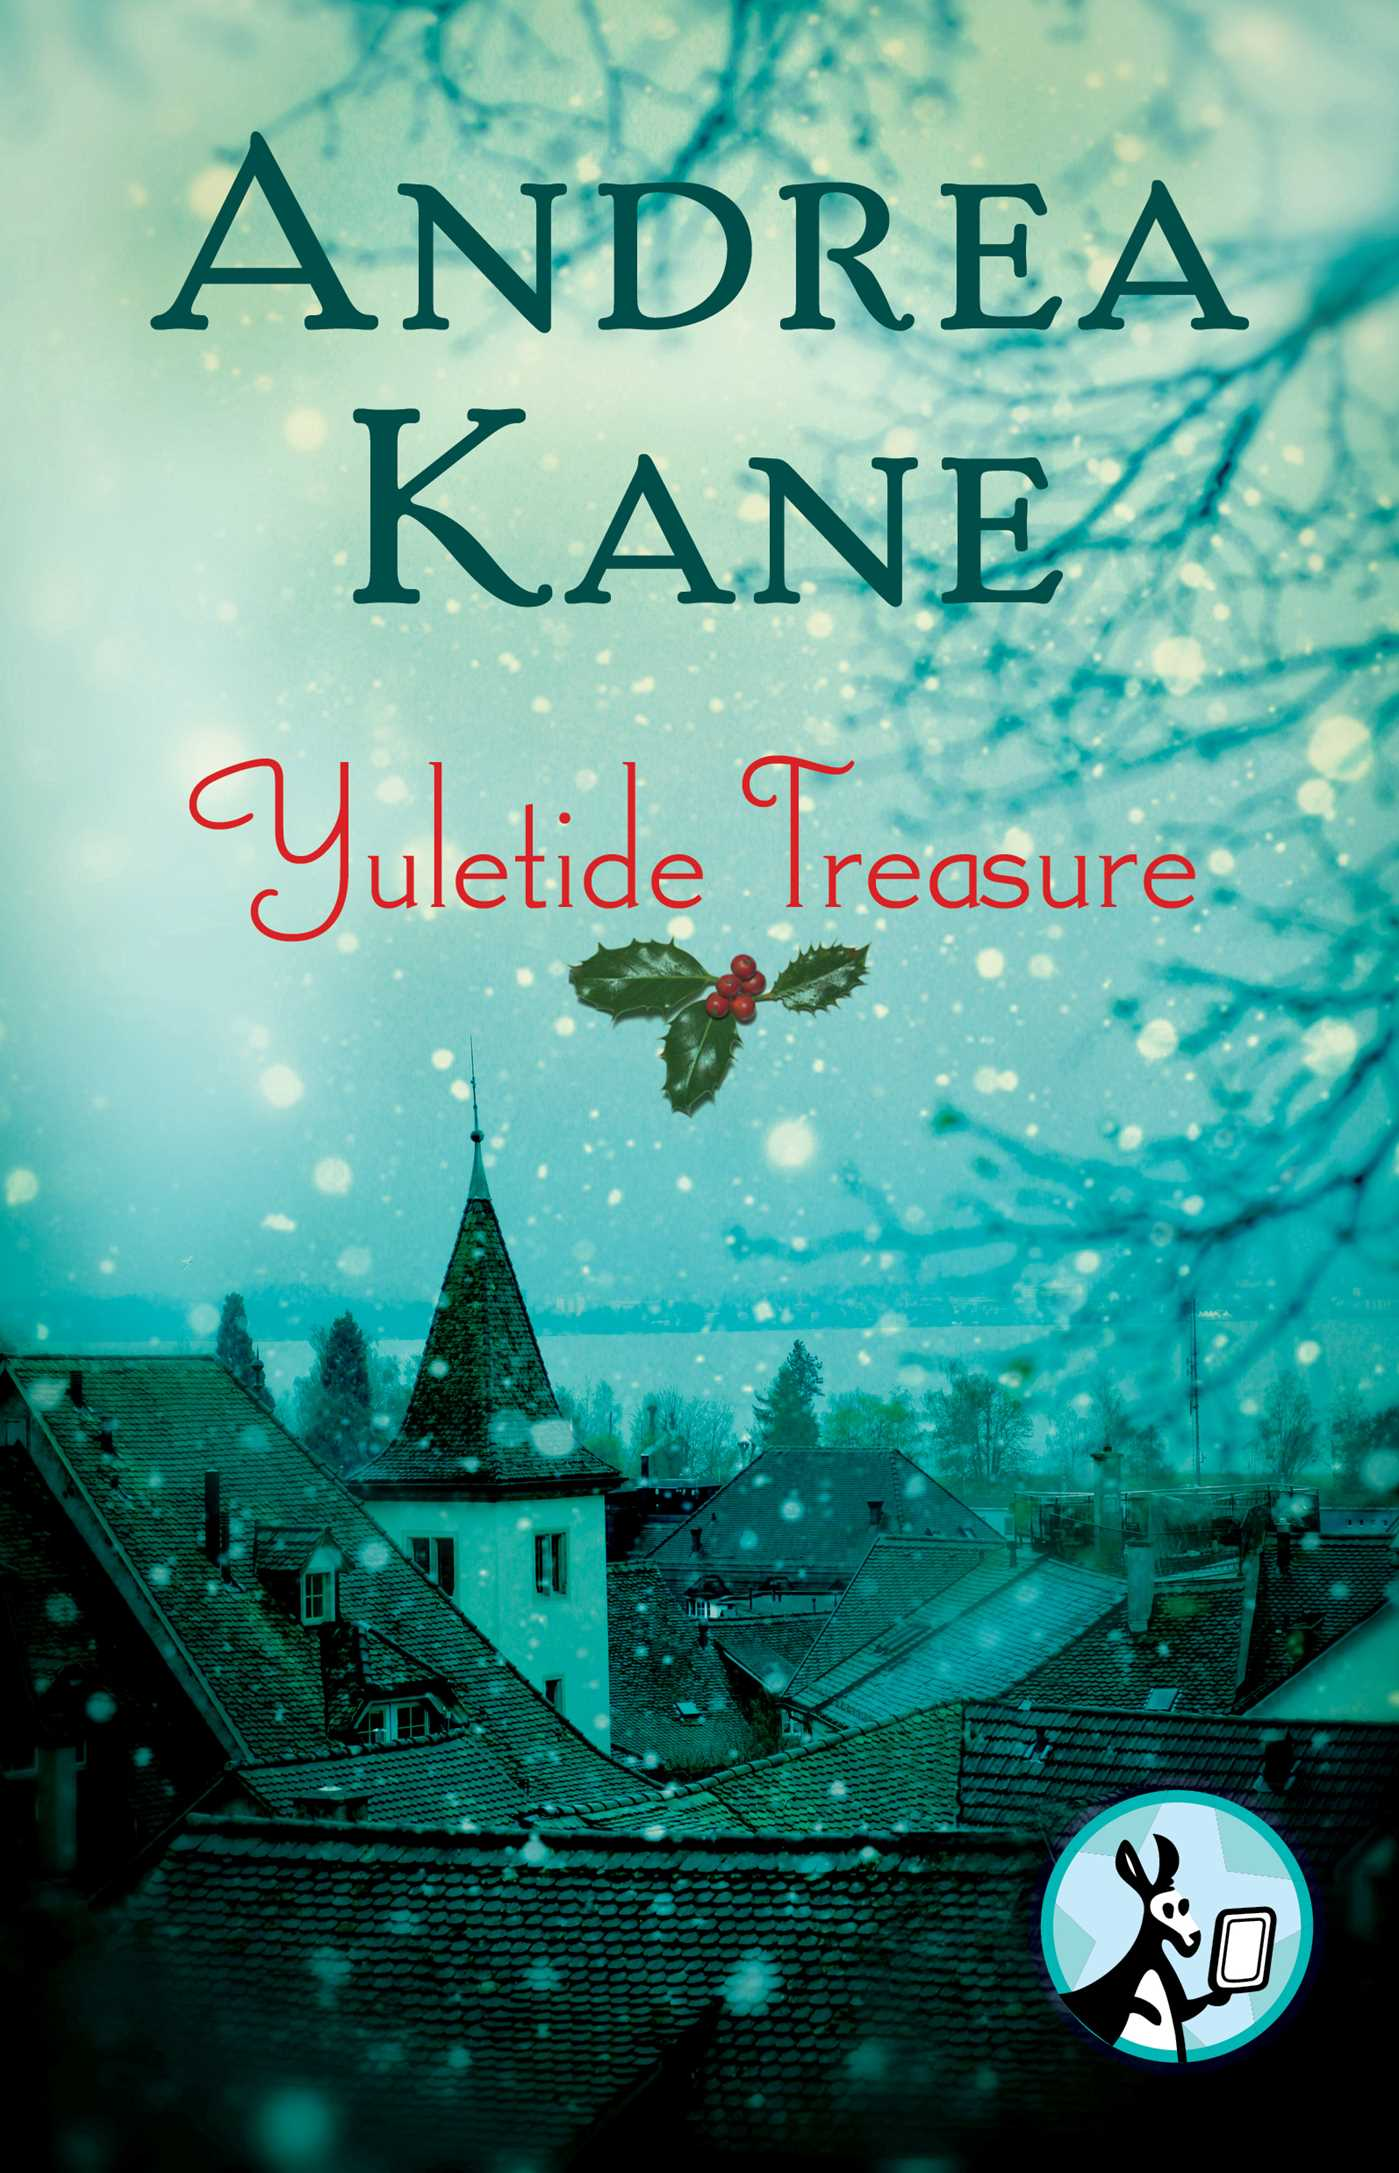 Yuletide treasure 9781476708553 hr